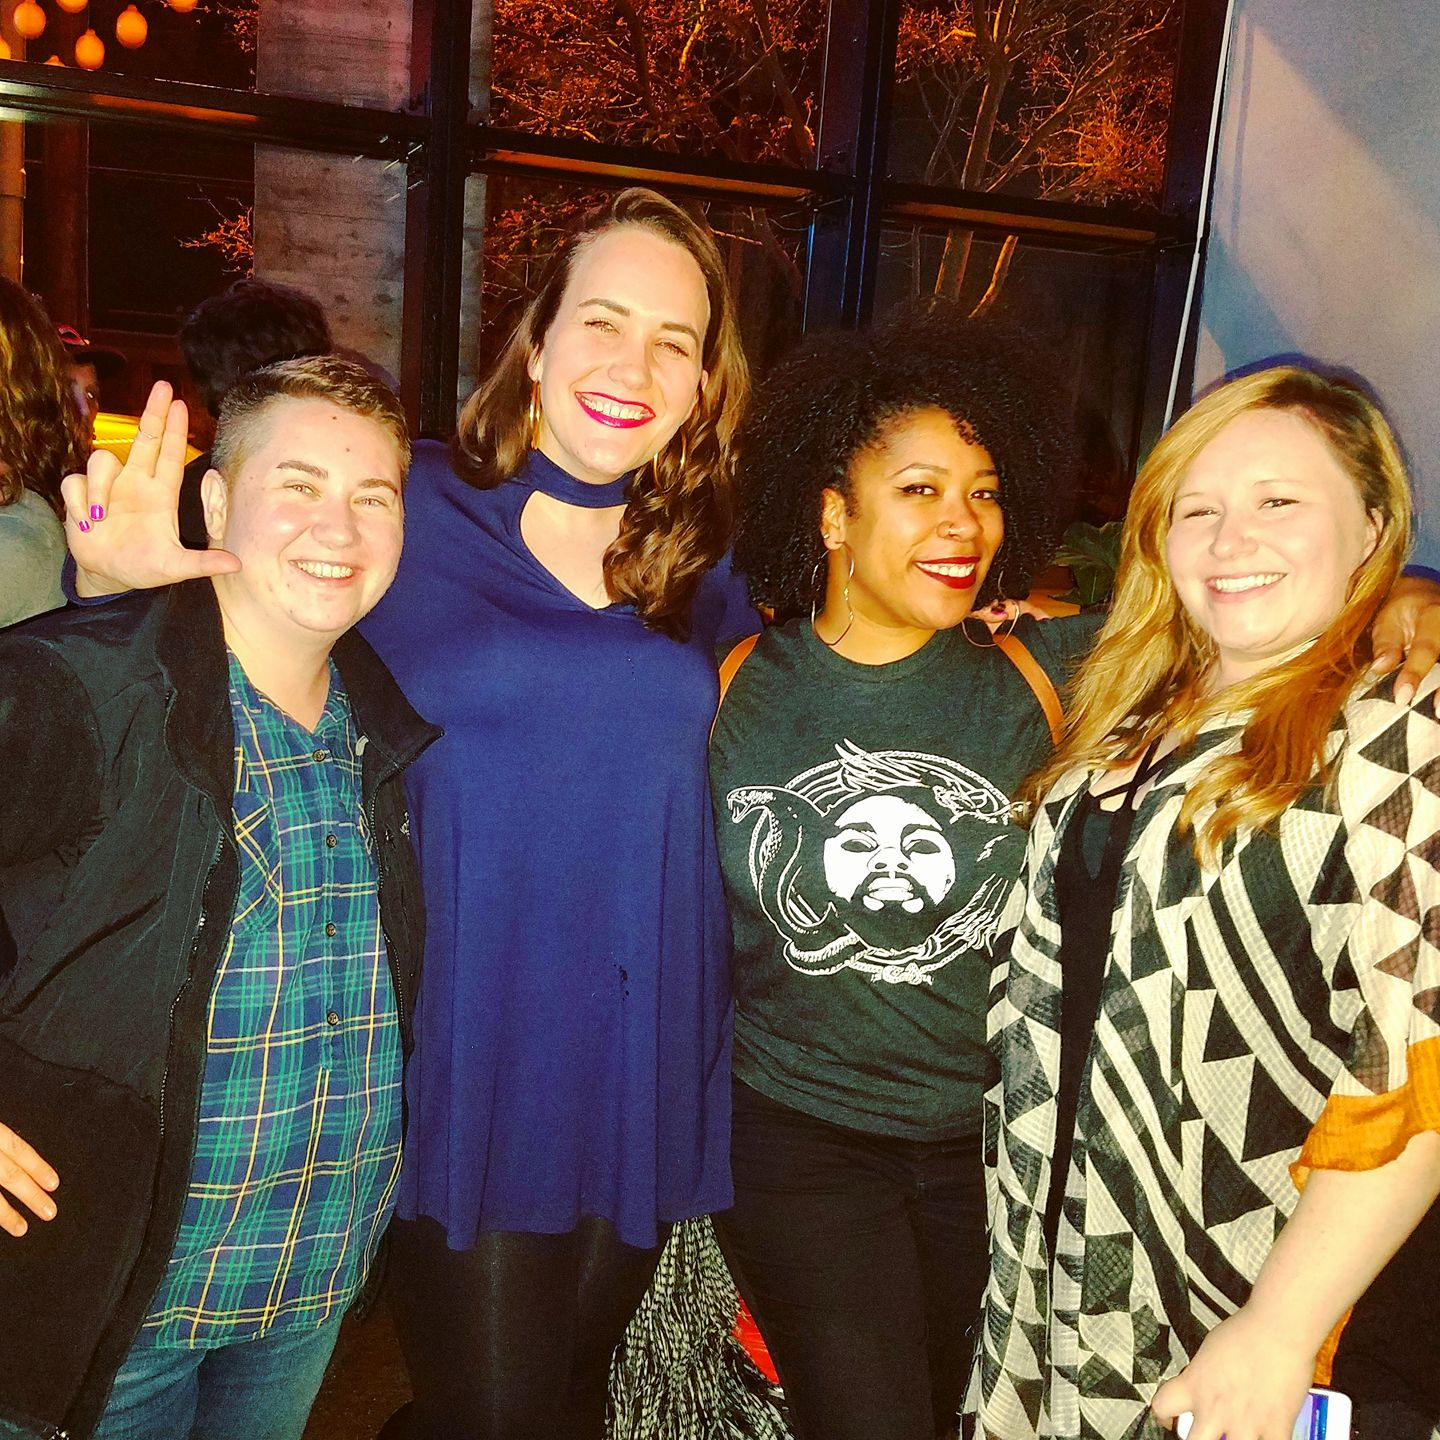 One of my favorite podcasters is  Tracy Clayton  (second from right) of Another Round. She is coincidentally also from Louisville, and my friends and I met her in 2017!